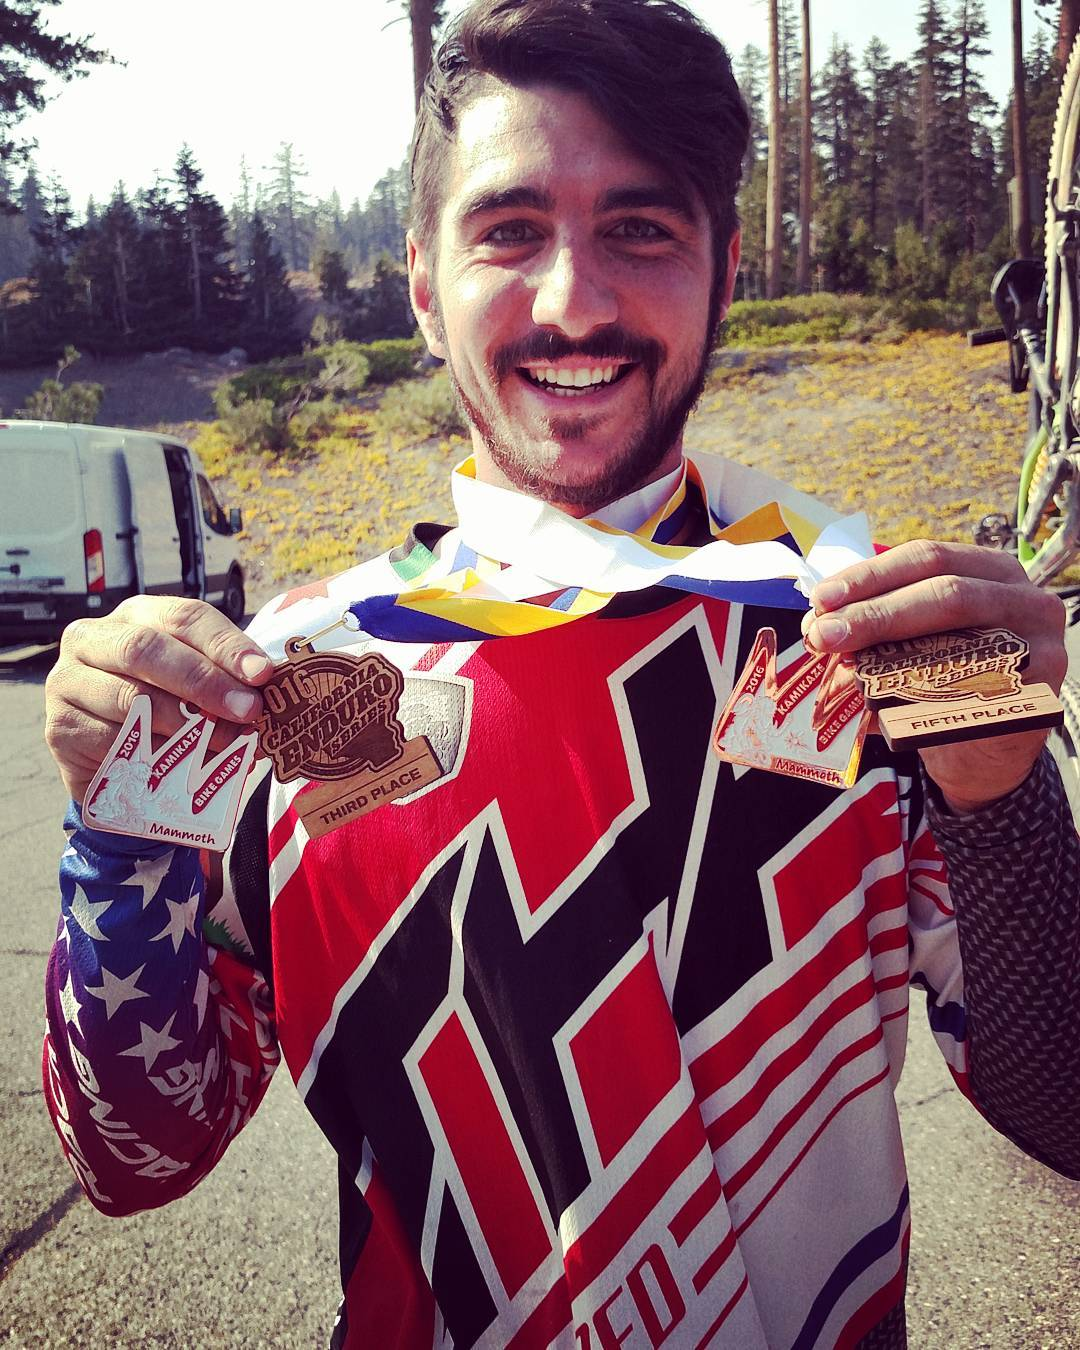 Lots of #hardware made wrapping up the weekend nicely! The #kamikazebikegames were a blast! @Ashton_MTB